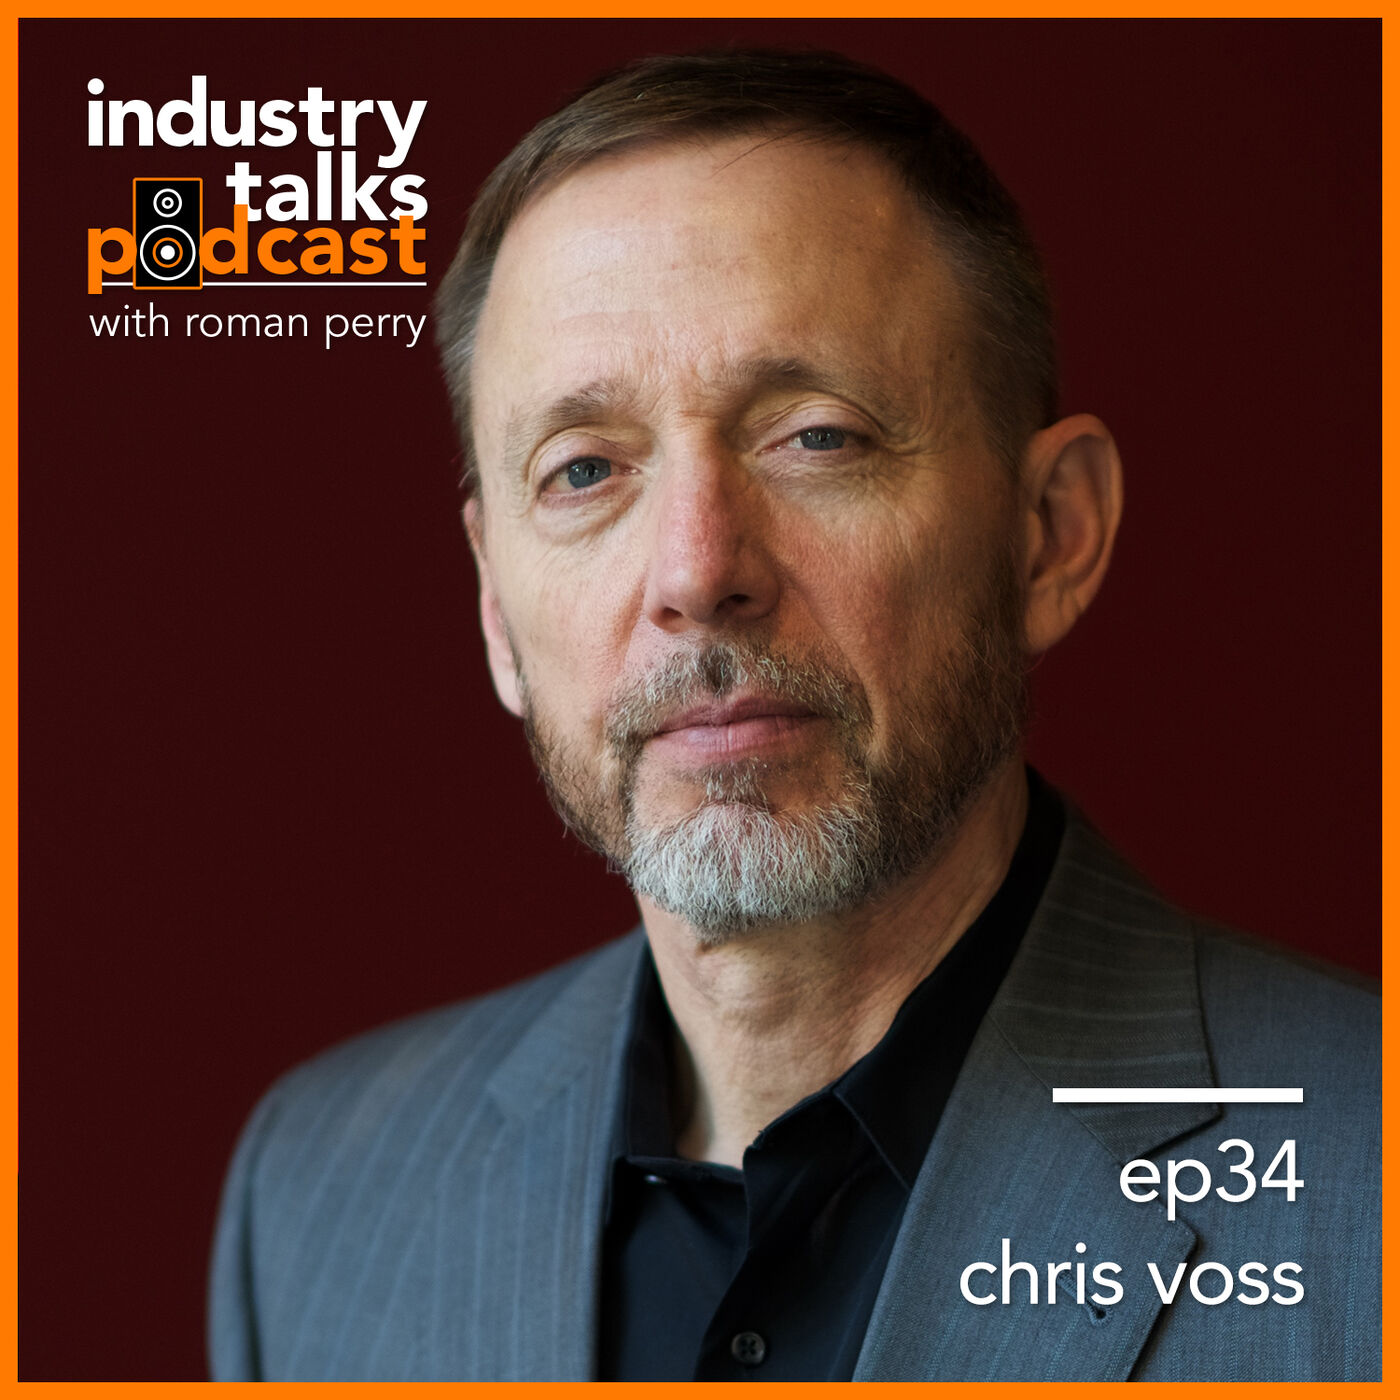 ep34 - Chris Voss: Learn to Cut Record Deals from an FBI Negotiator